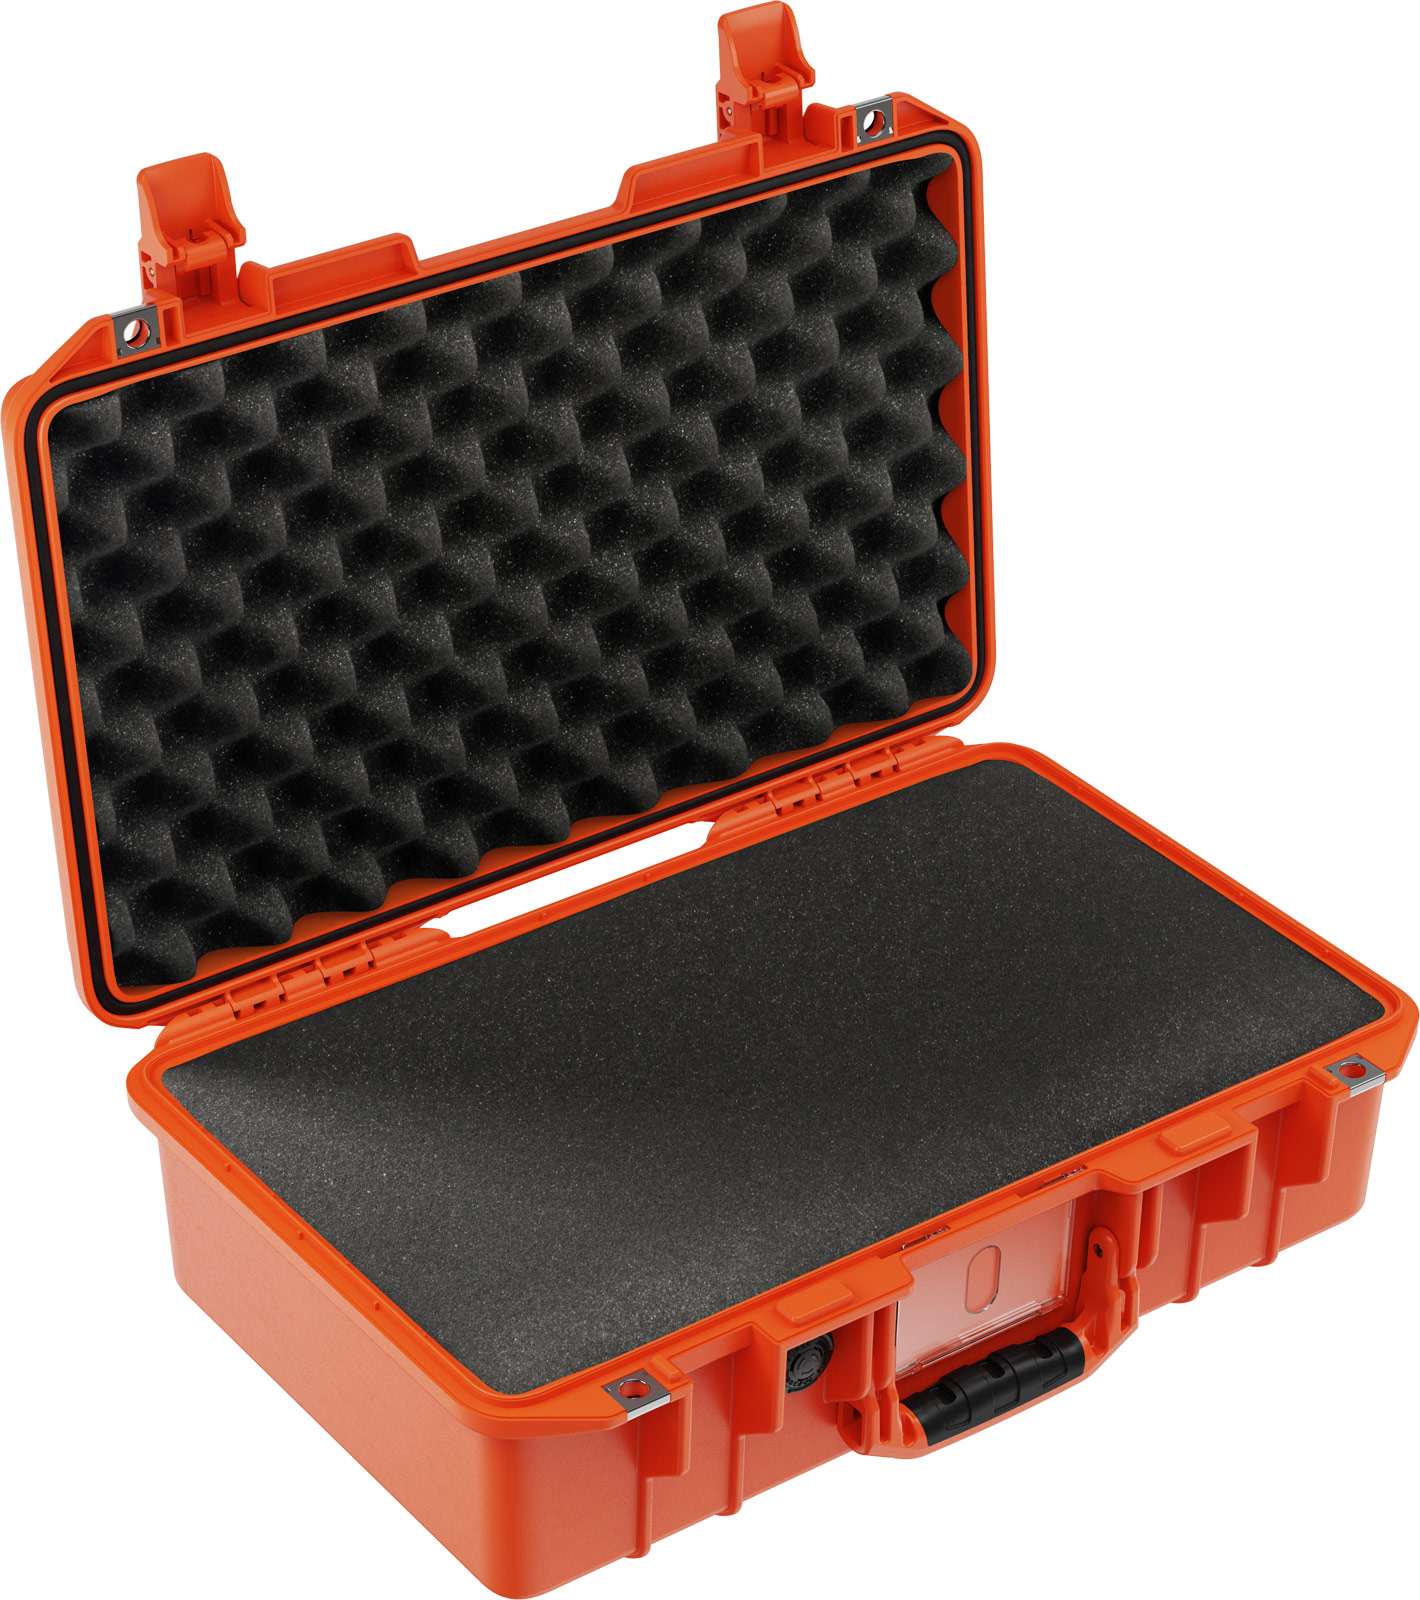 buy pelican air 1485 shop orange foam travel case